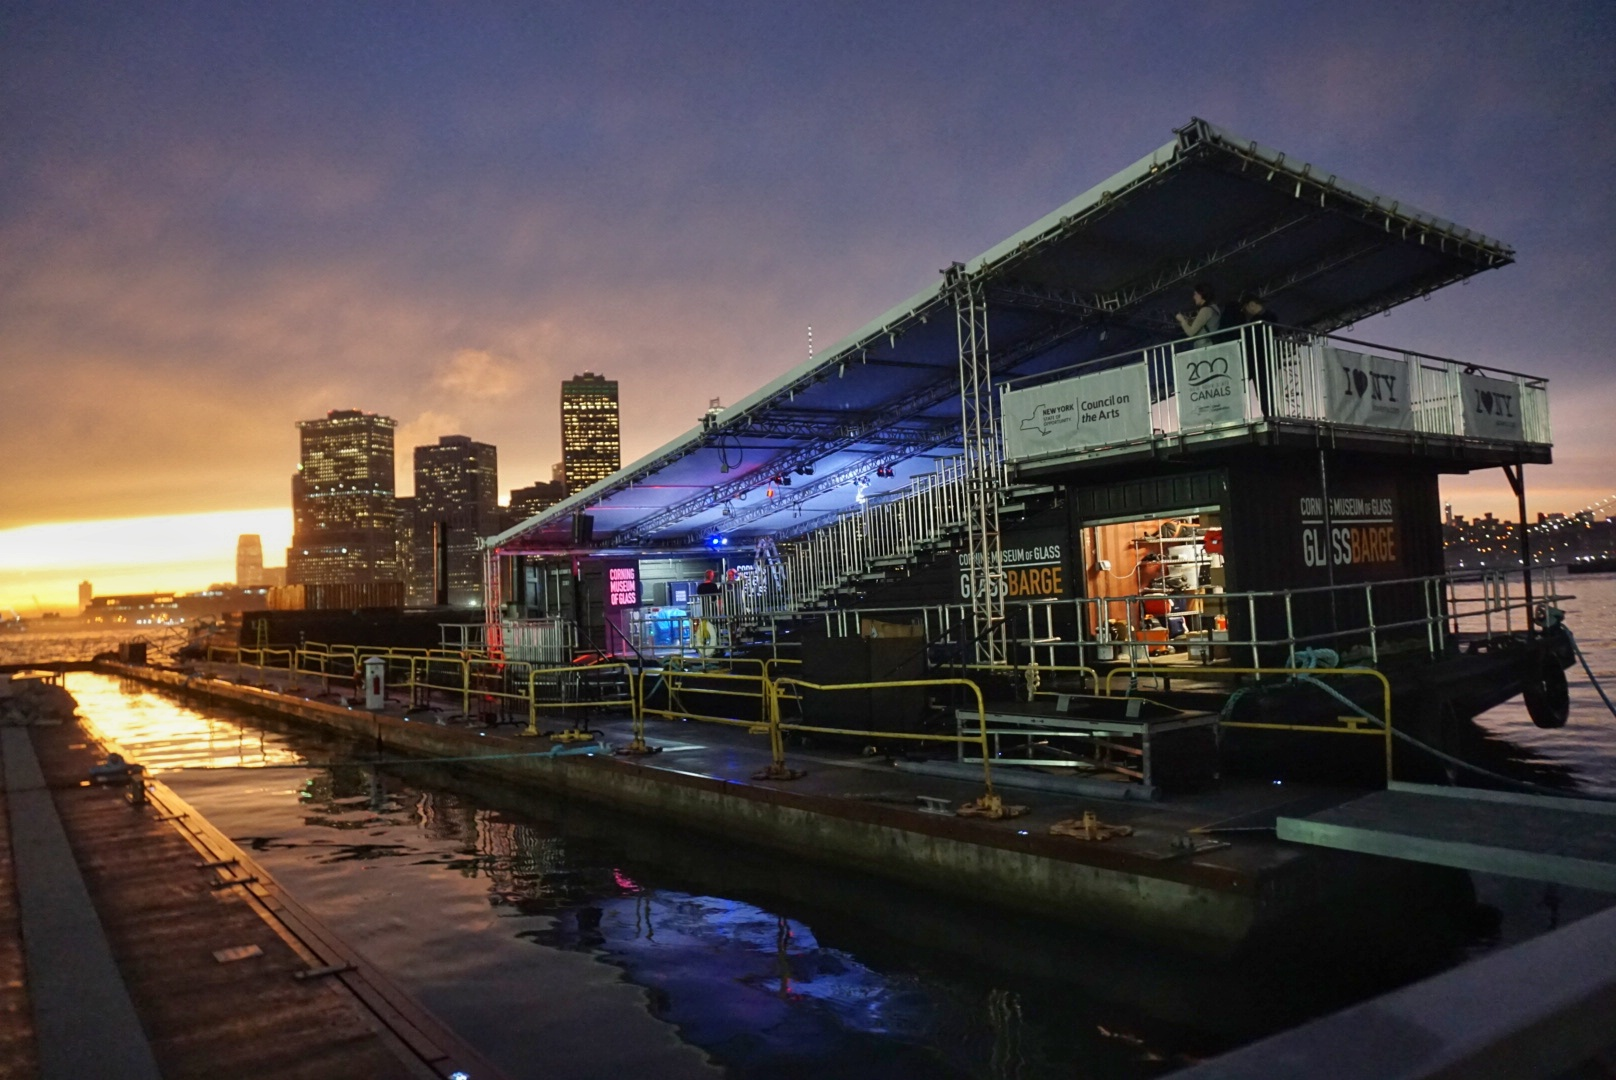 CMOG GlassBarge at Sunset in Brooklyn - Corning Museum of Glass